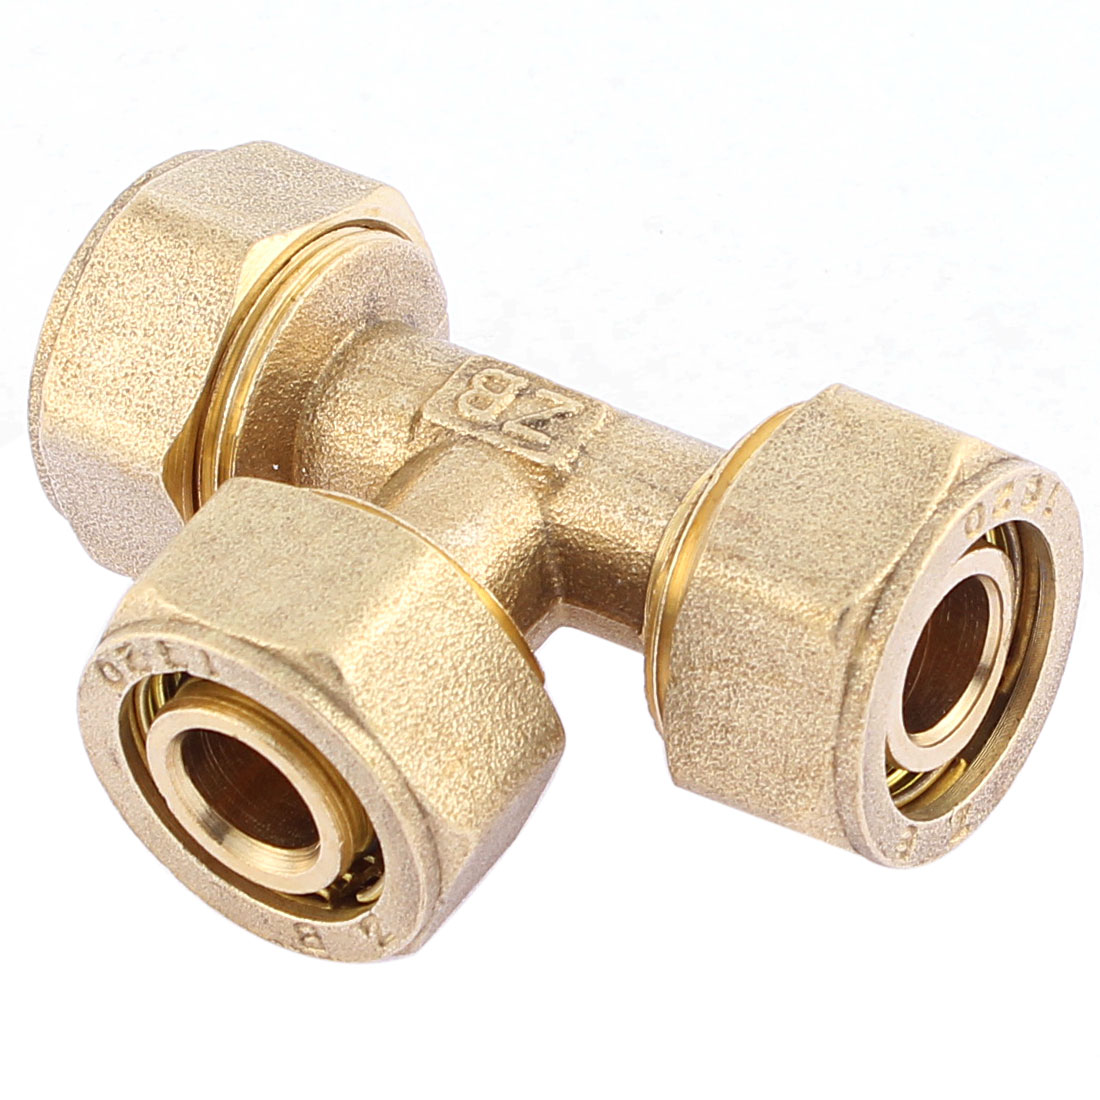 16mm x 20mm Brass Equal Tee Union Coupling Adapter Connector